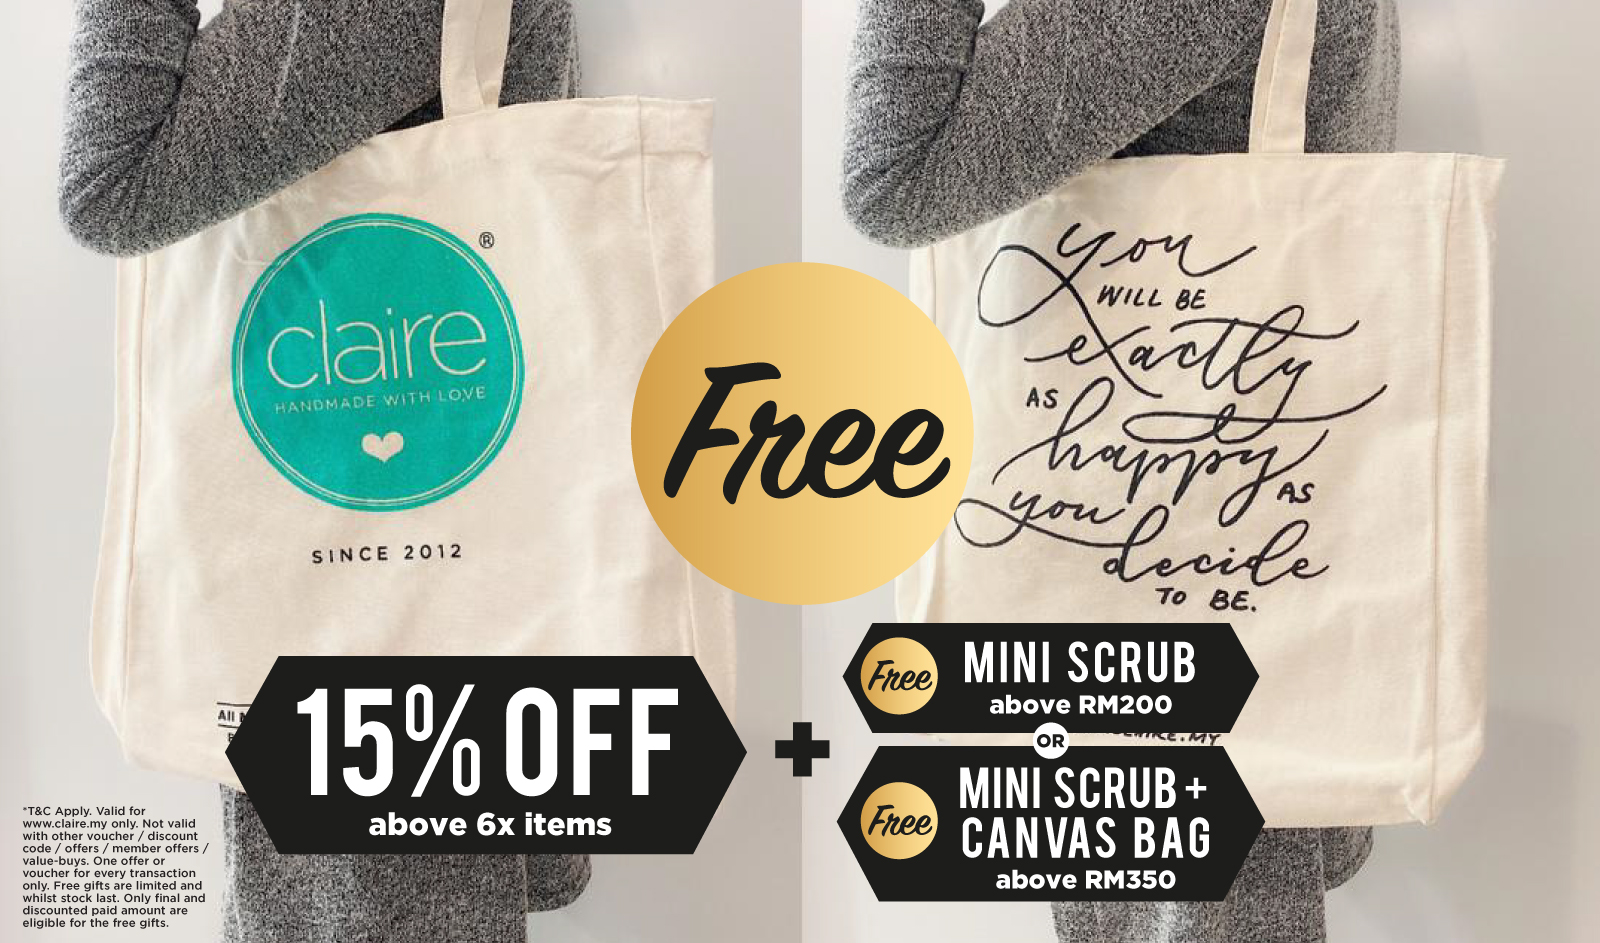 Claire_Christmas-2019-free-bag.jpg